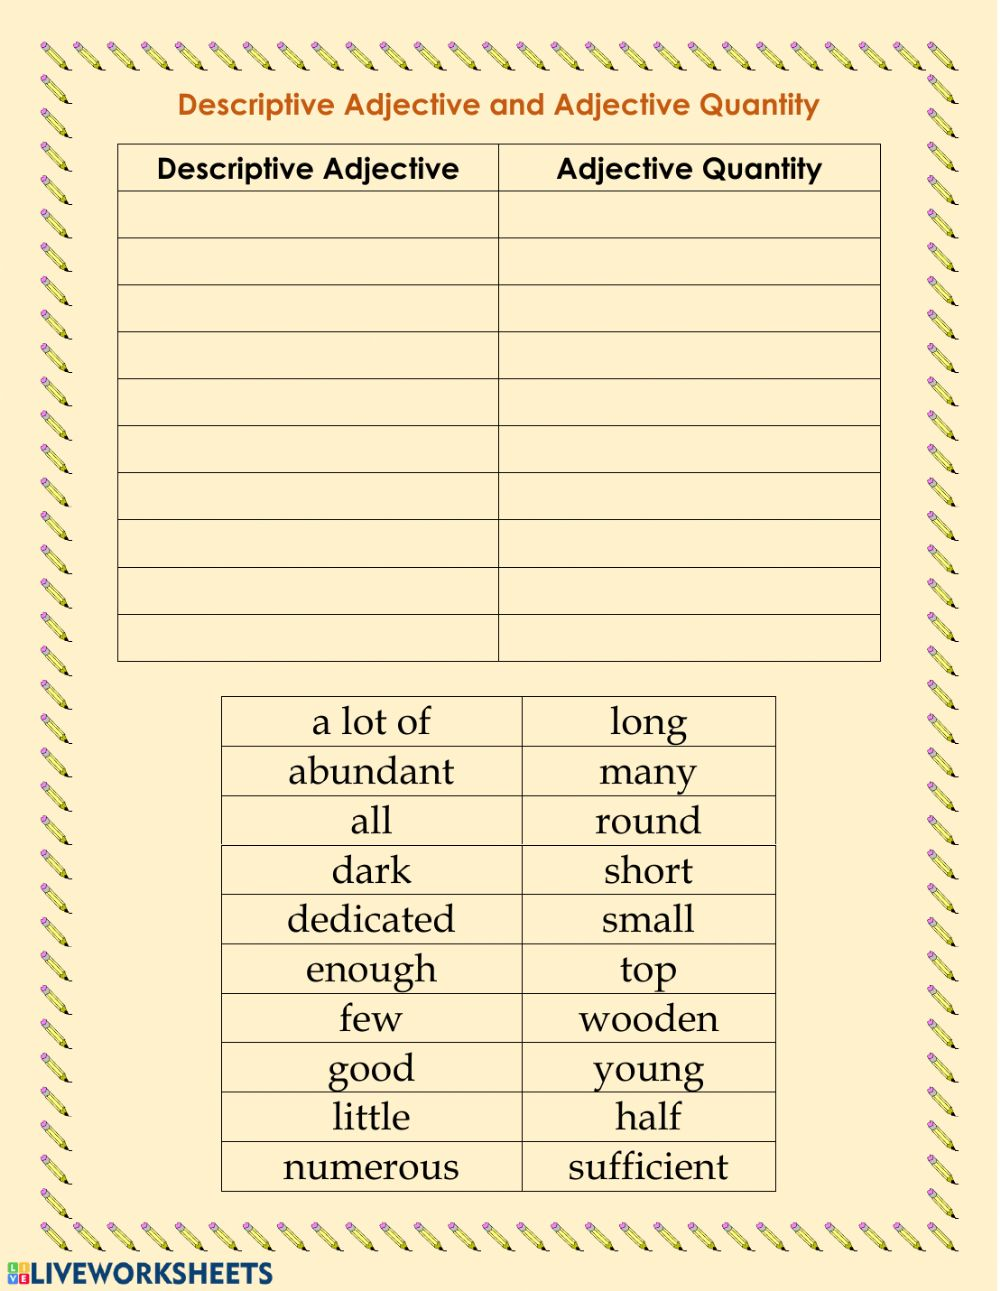 hight resolution of Descriptive adjective and adjective quantity worksheet